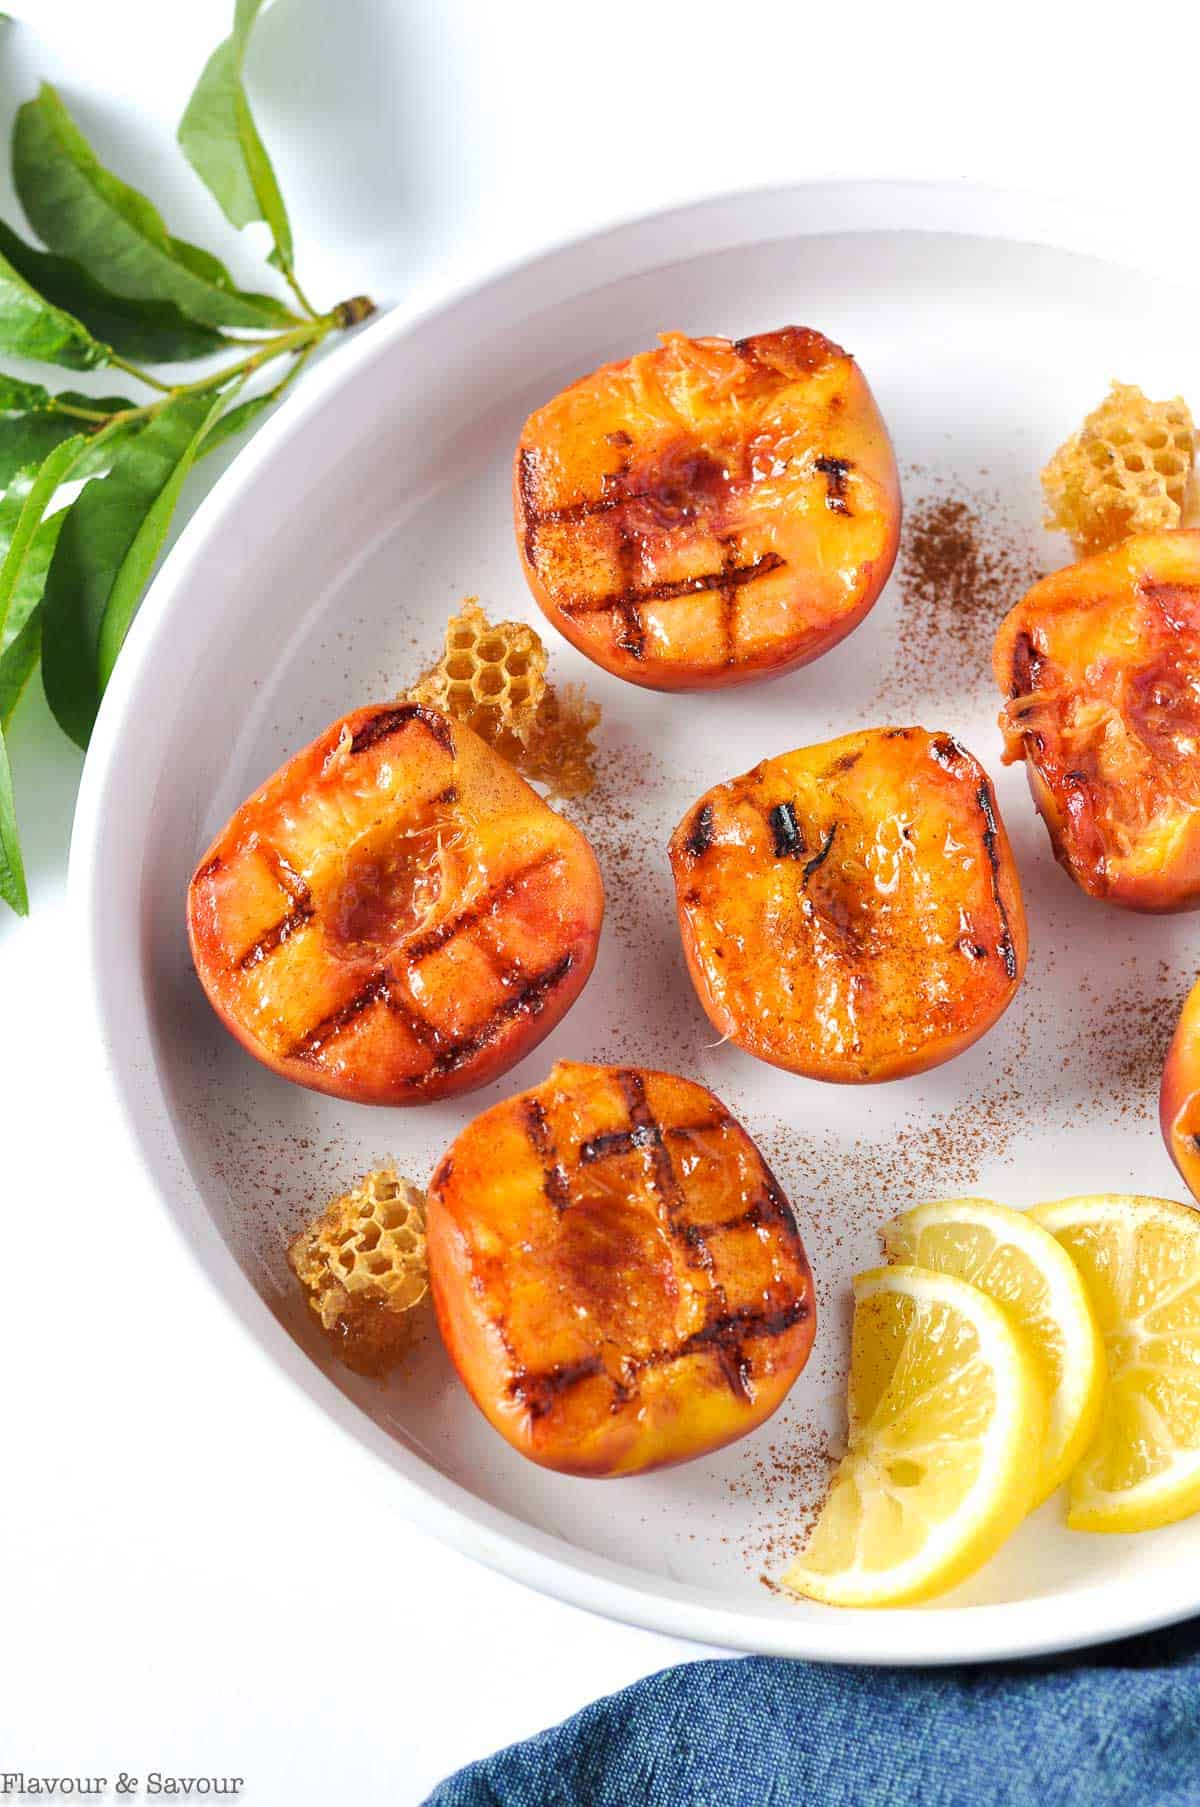 Peach halves with grill marks